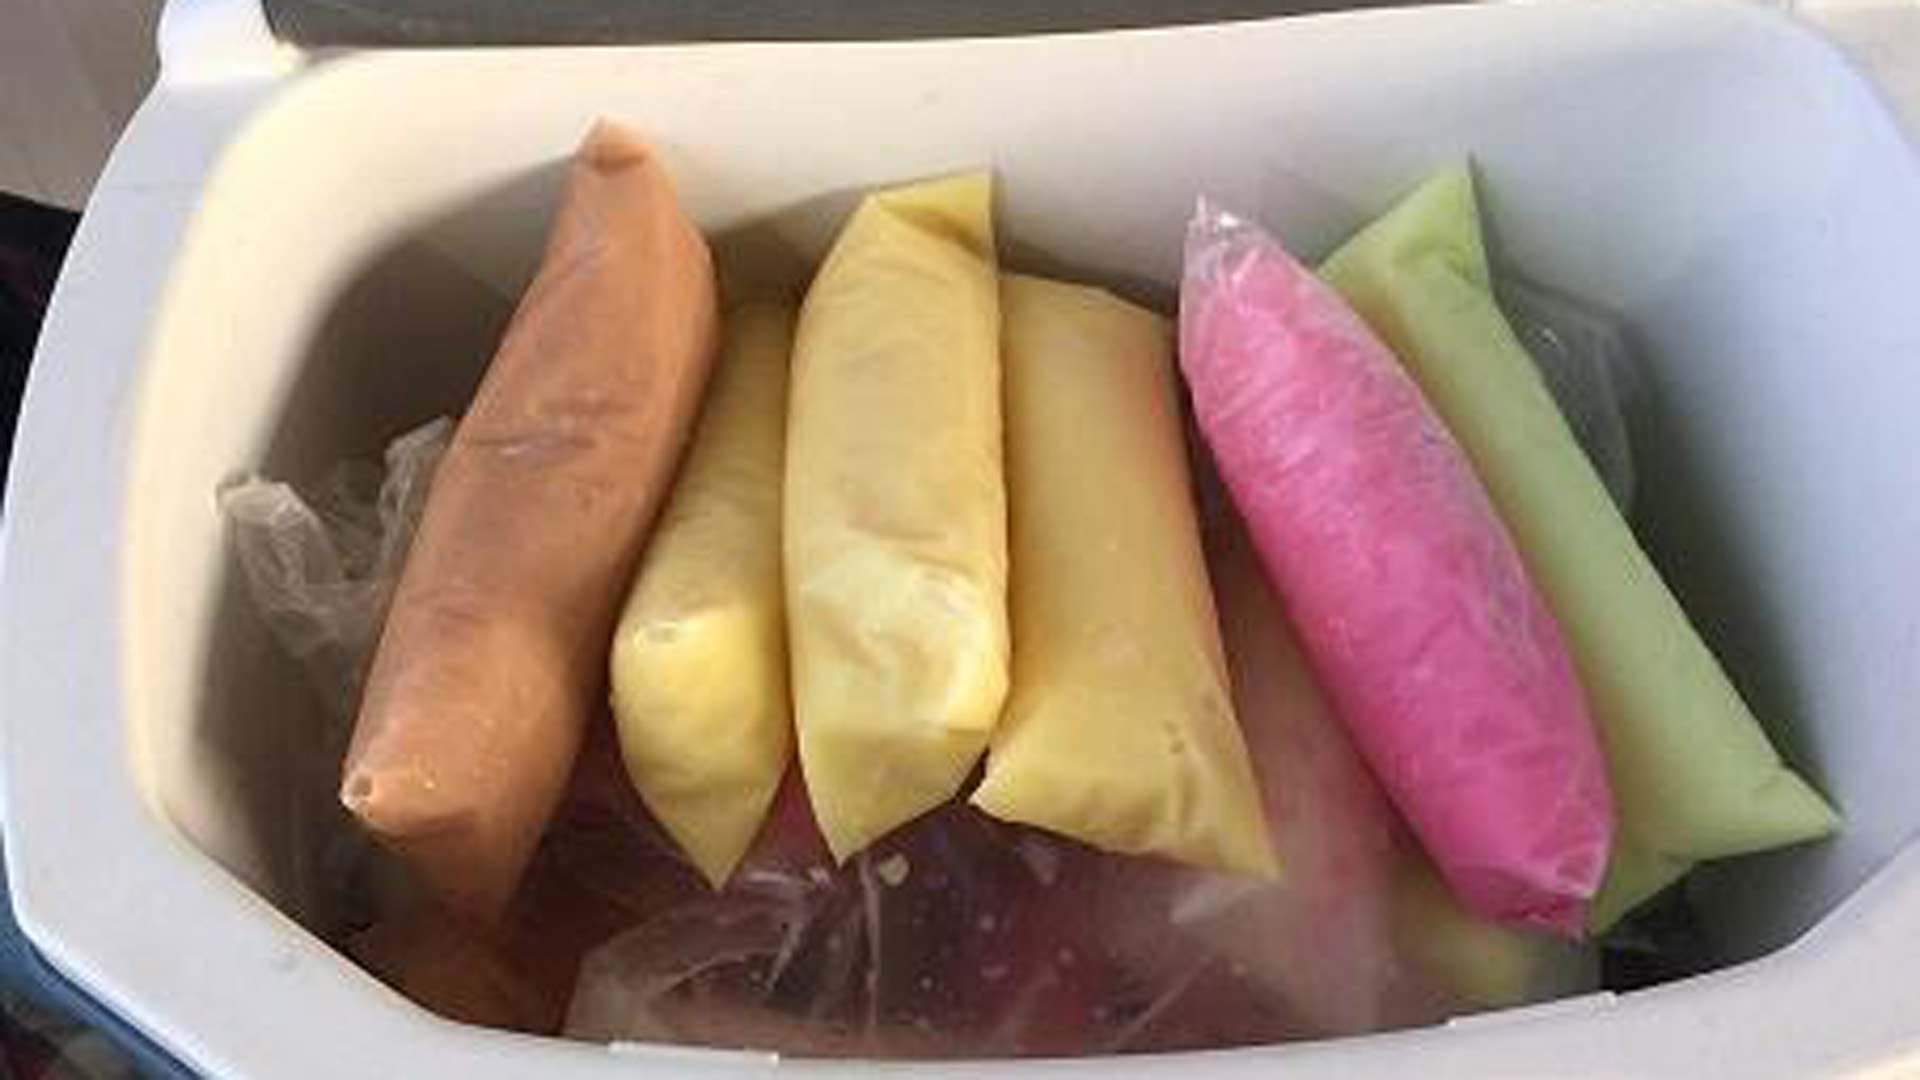 More than nine pounds of methamphetamine were found disguised as frozen Ice Pops, U.S. Customs and Border Protection agents said.